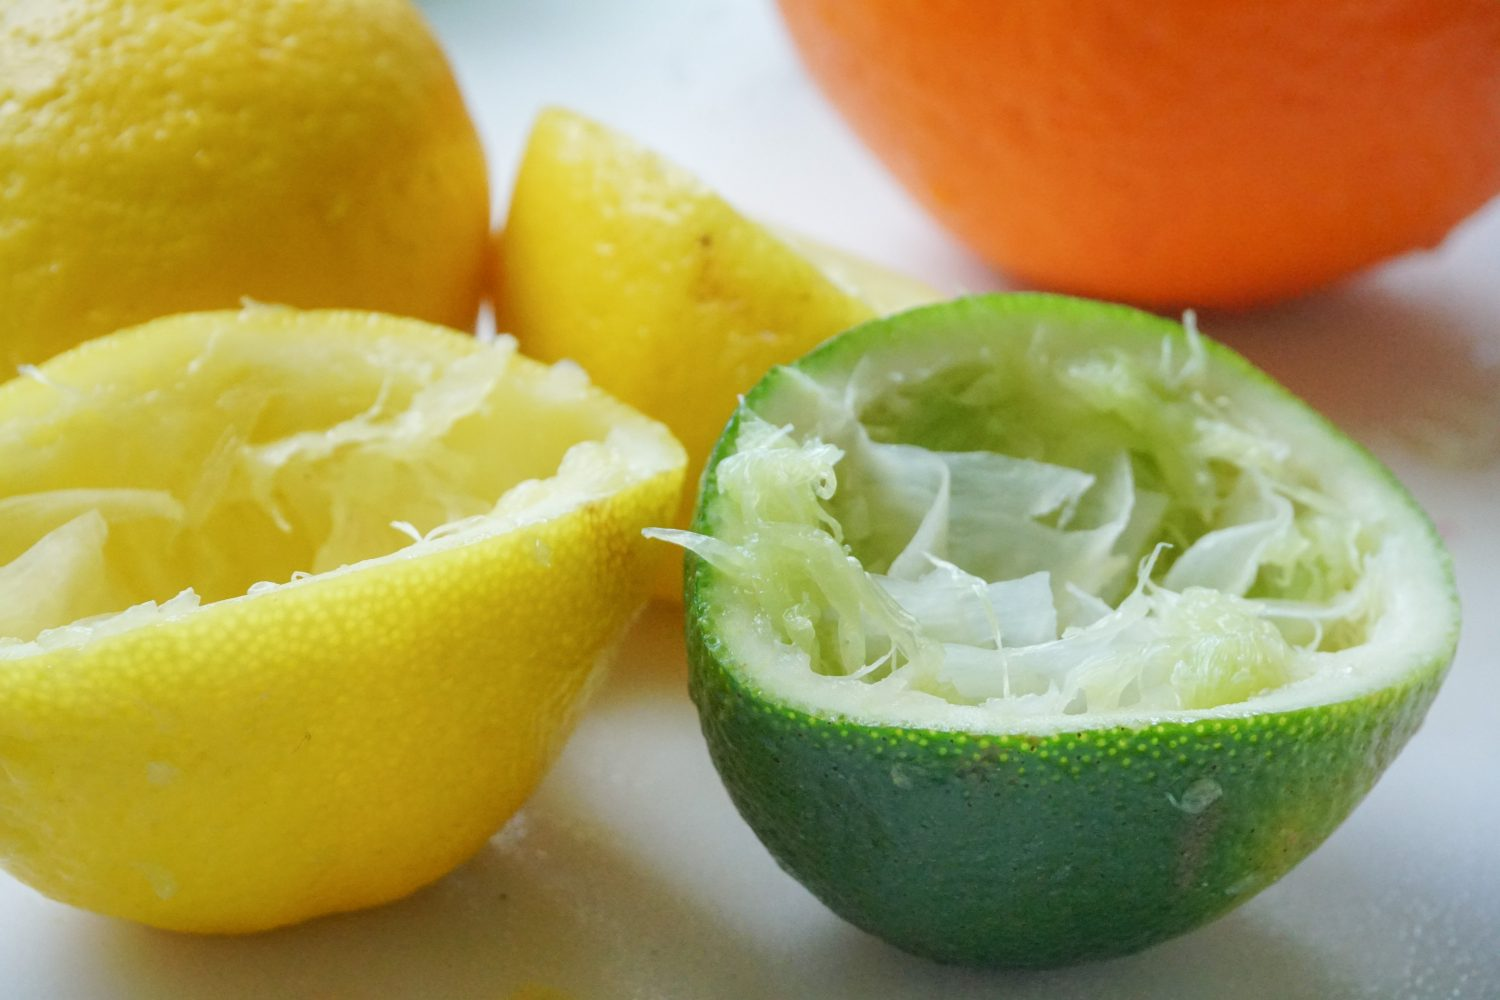 Reamed citrus